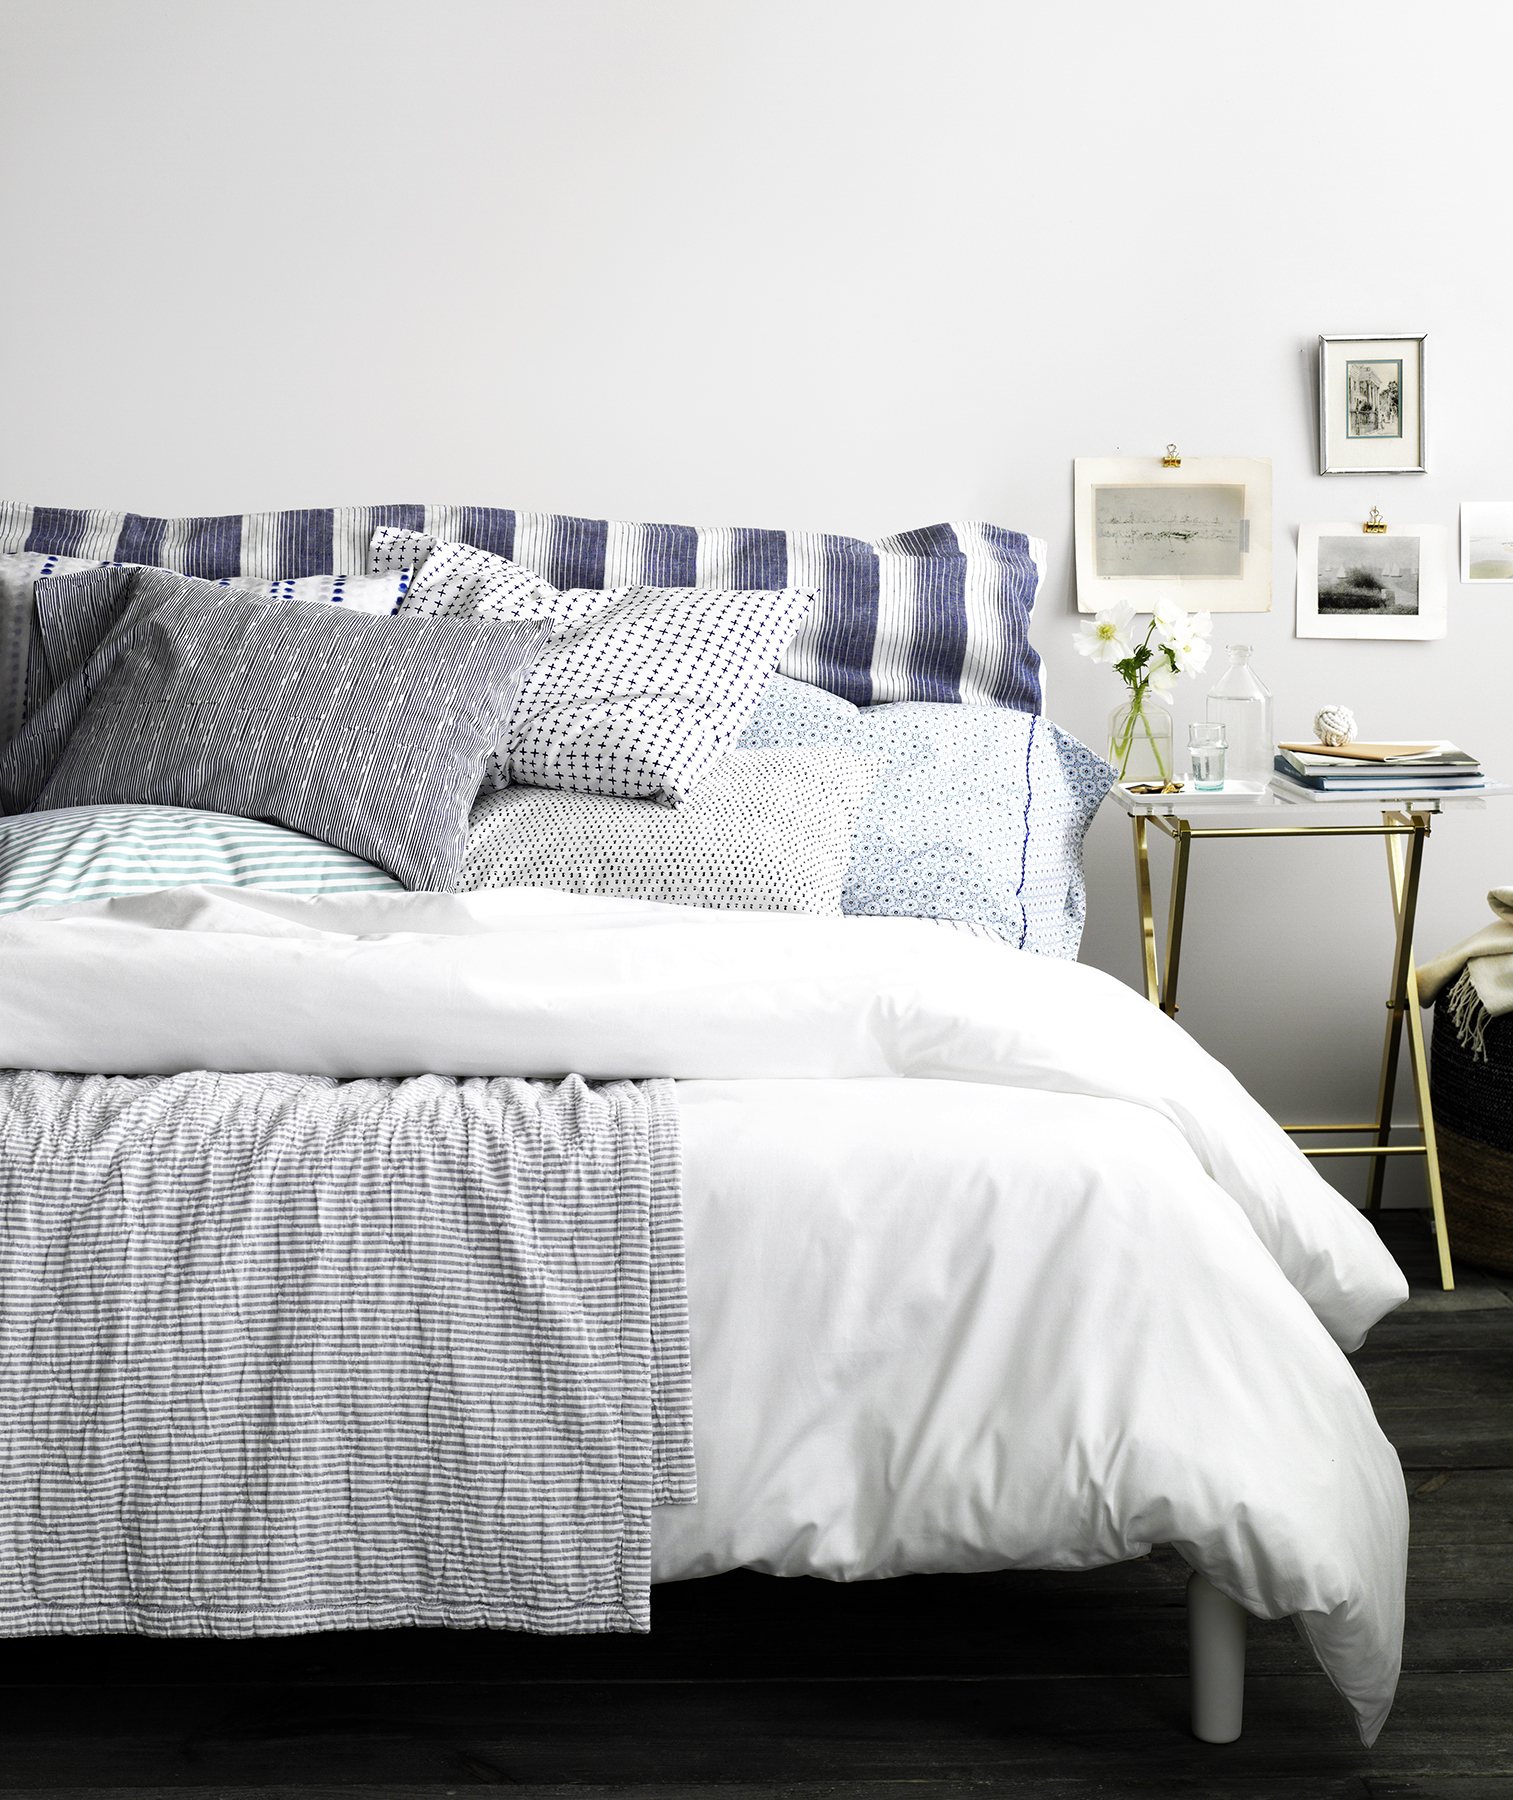 Simple Decorating Ideas To Make Your Room Look Amazing: 23 Decorating Tricks For Your Bedroom